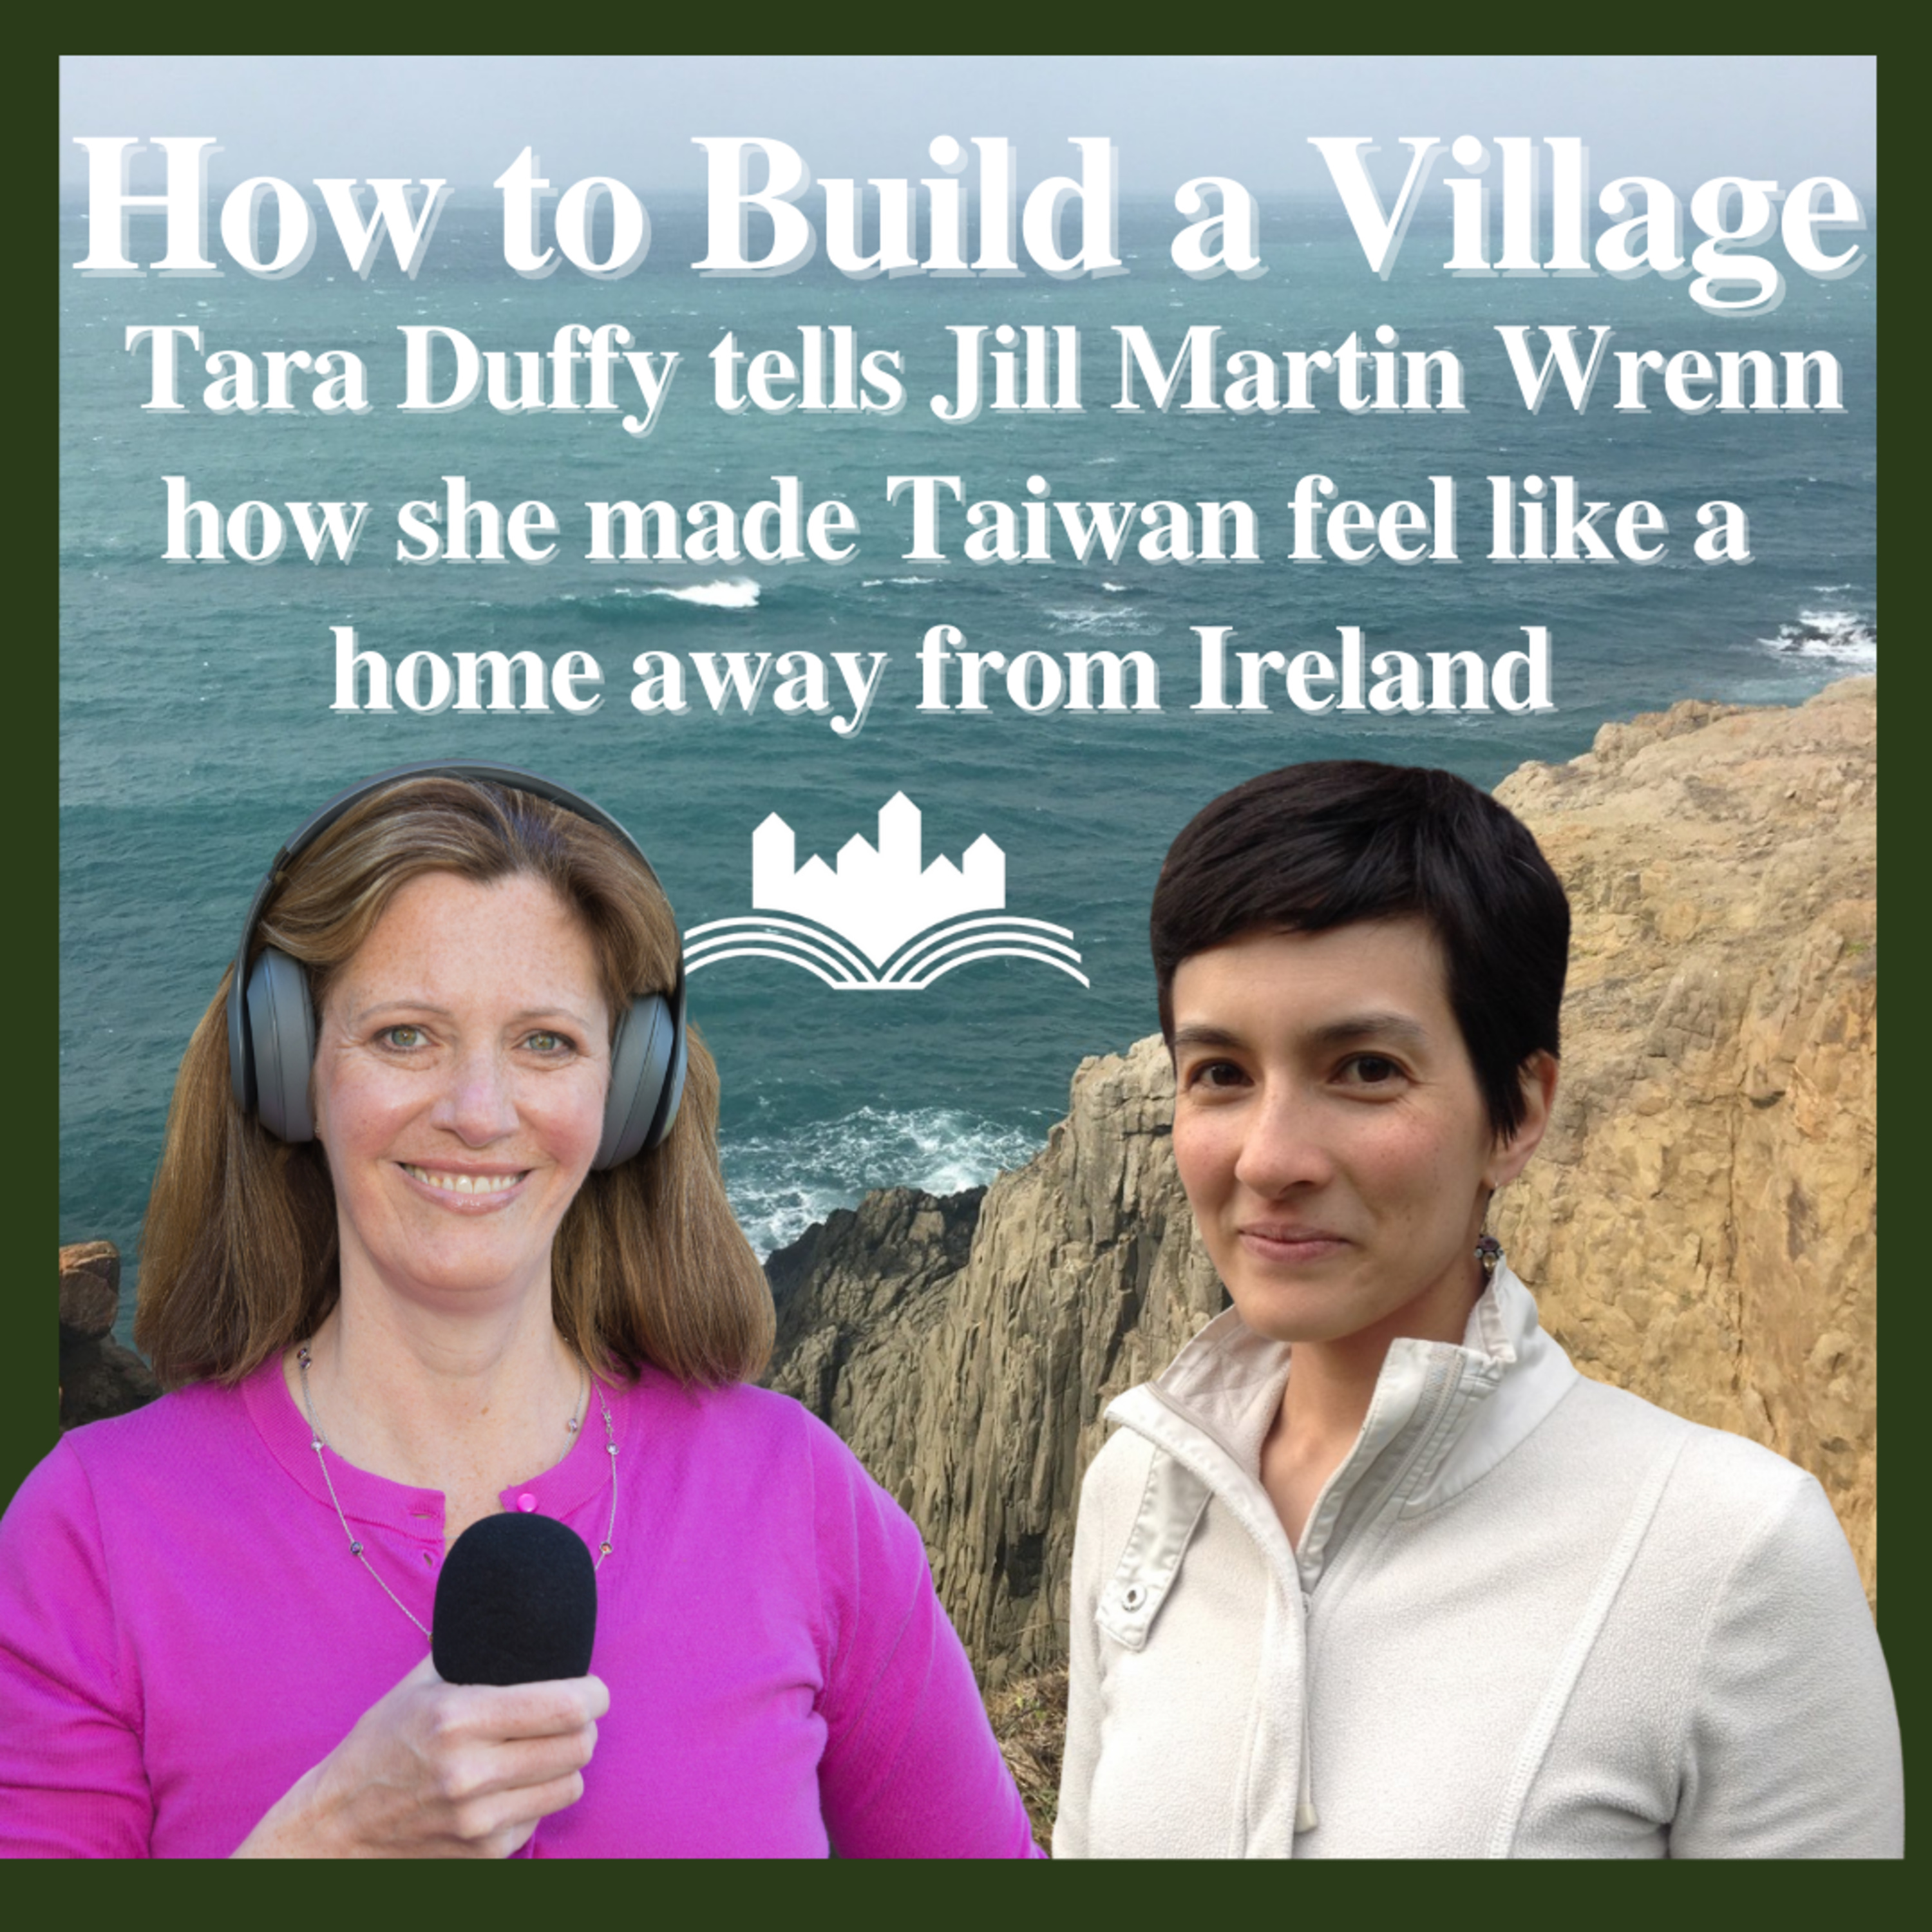 From Ireland to Taiwan, how yoga helped Tara Duffy build a village around the world